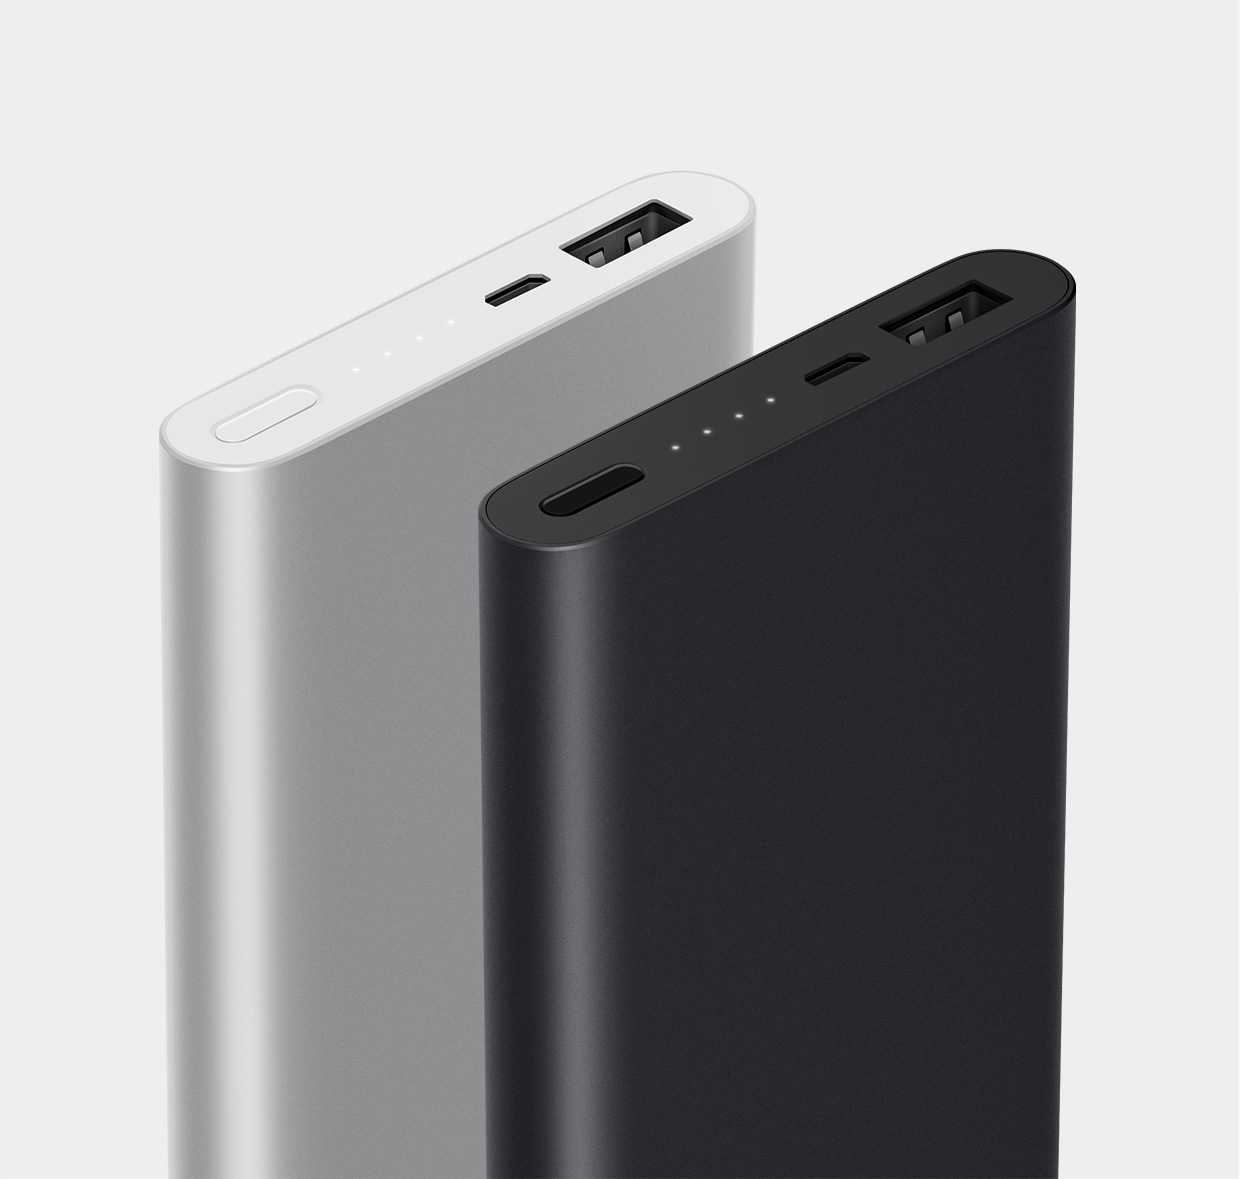 [NEW] Original Xiaomi 10000mAh Mi Slim Power Bank 2, Mobile Phones & Tablets, Mobile & Tablet Accessories, Power Banks & Chargers on Carousell